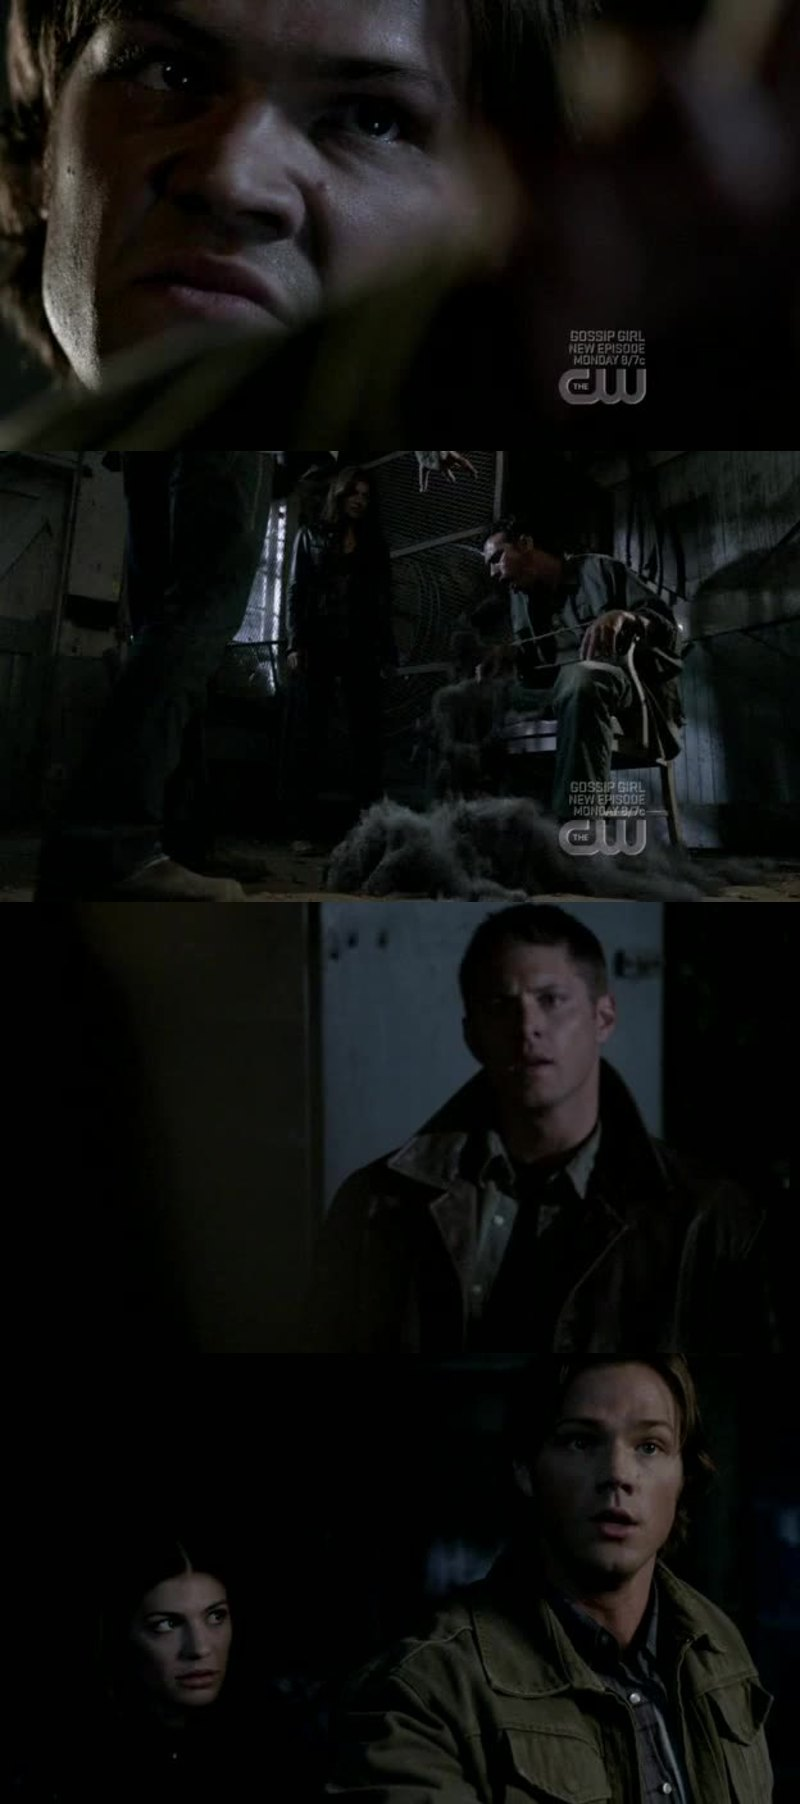 The moment when you understand that sam is in a bad situation.